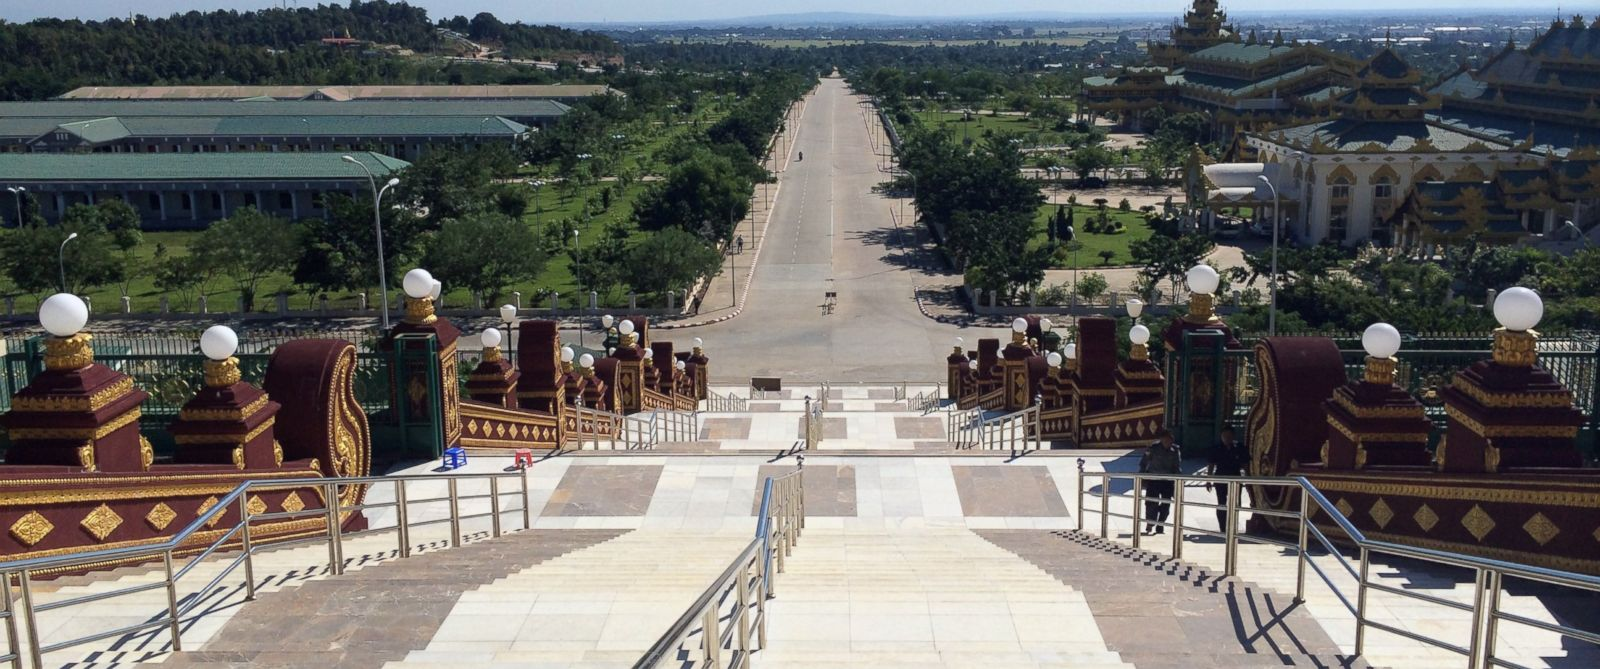 PHOTO: Few people can be seen in Naypyidaw, Myanmar.